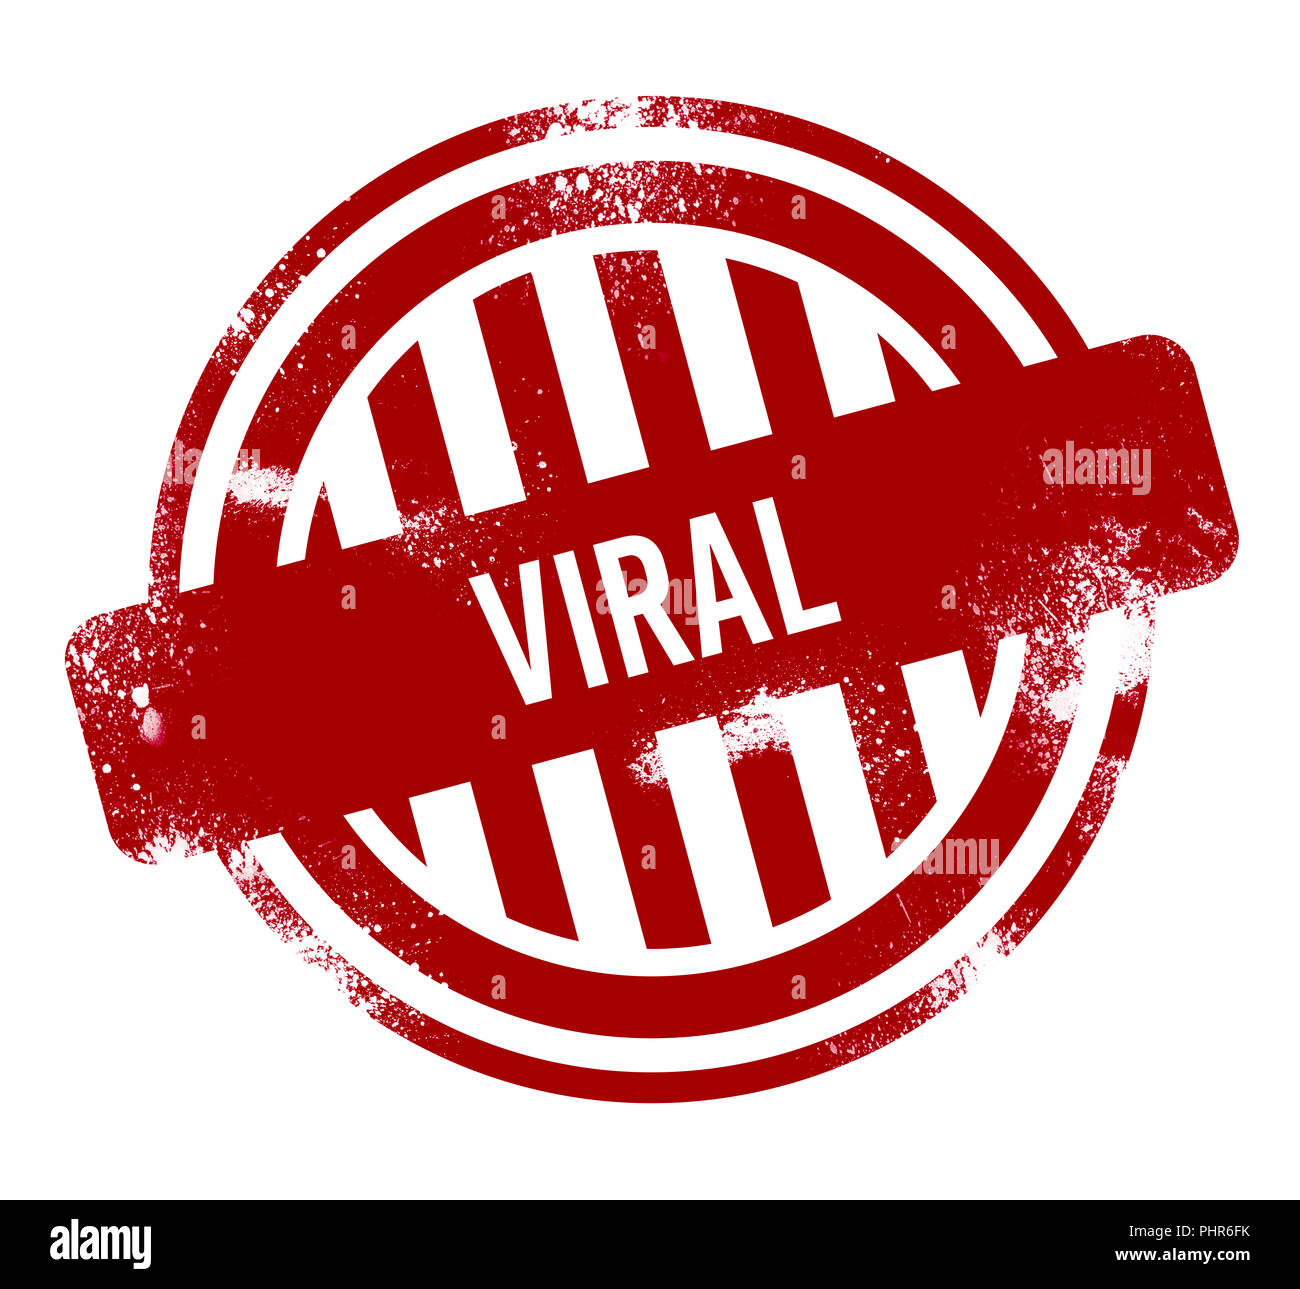 Viral - red grunge button, stamp - Stock Image